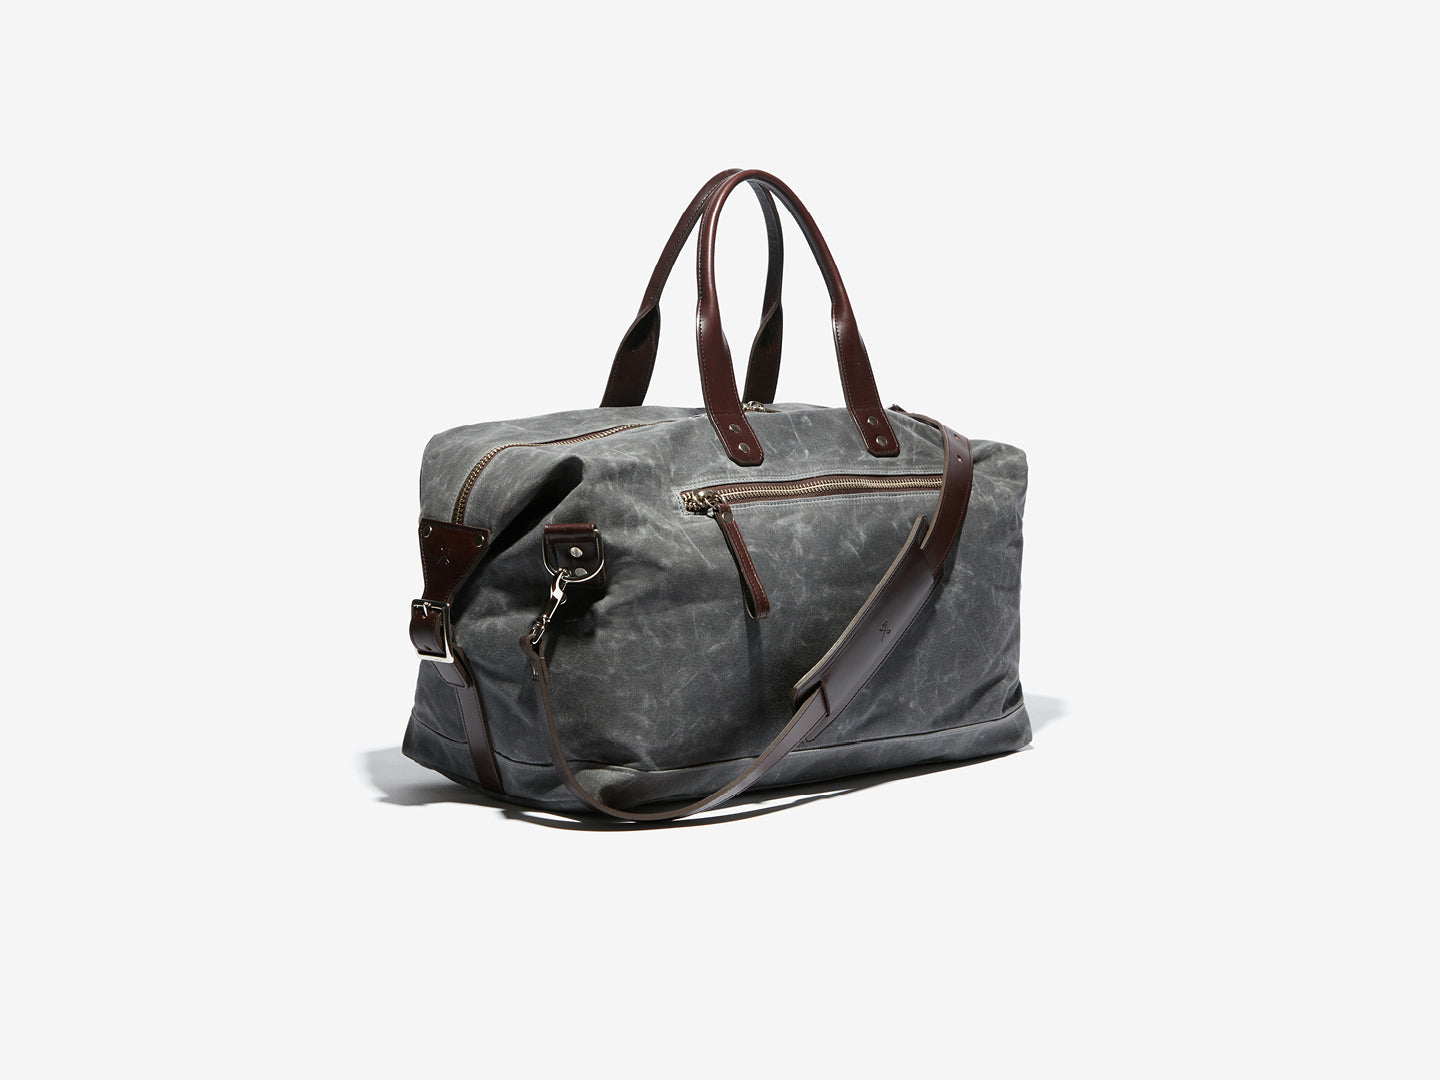 Bedford Wax weekend duffle